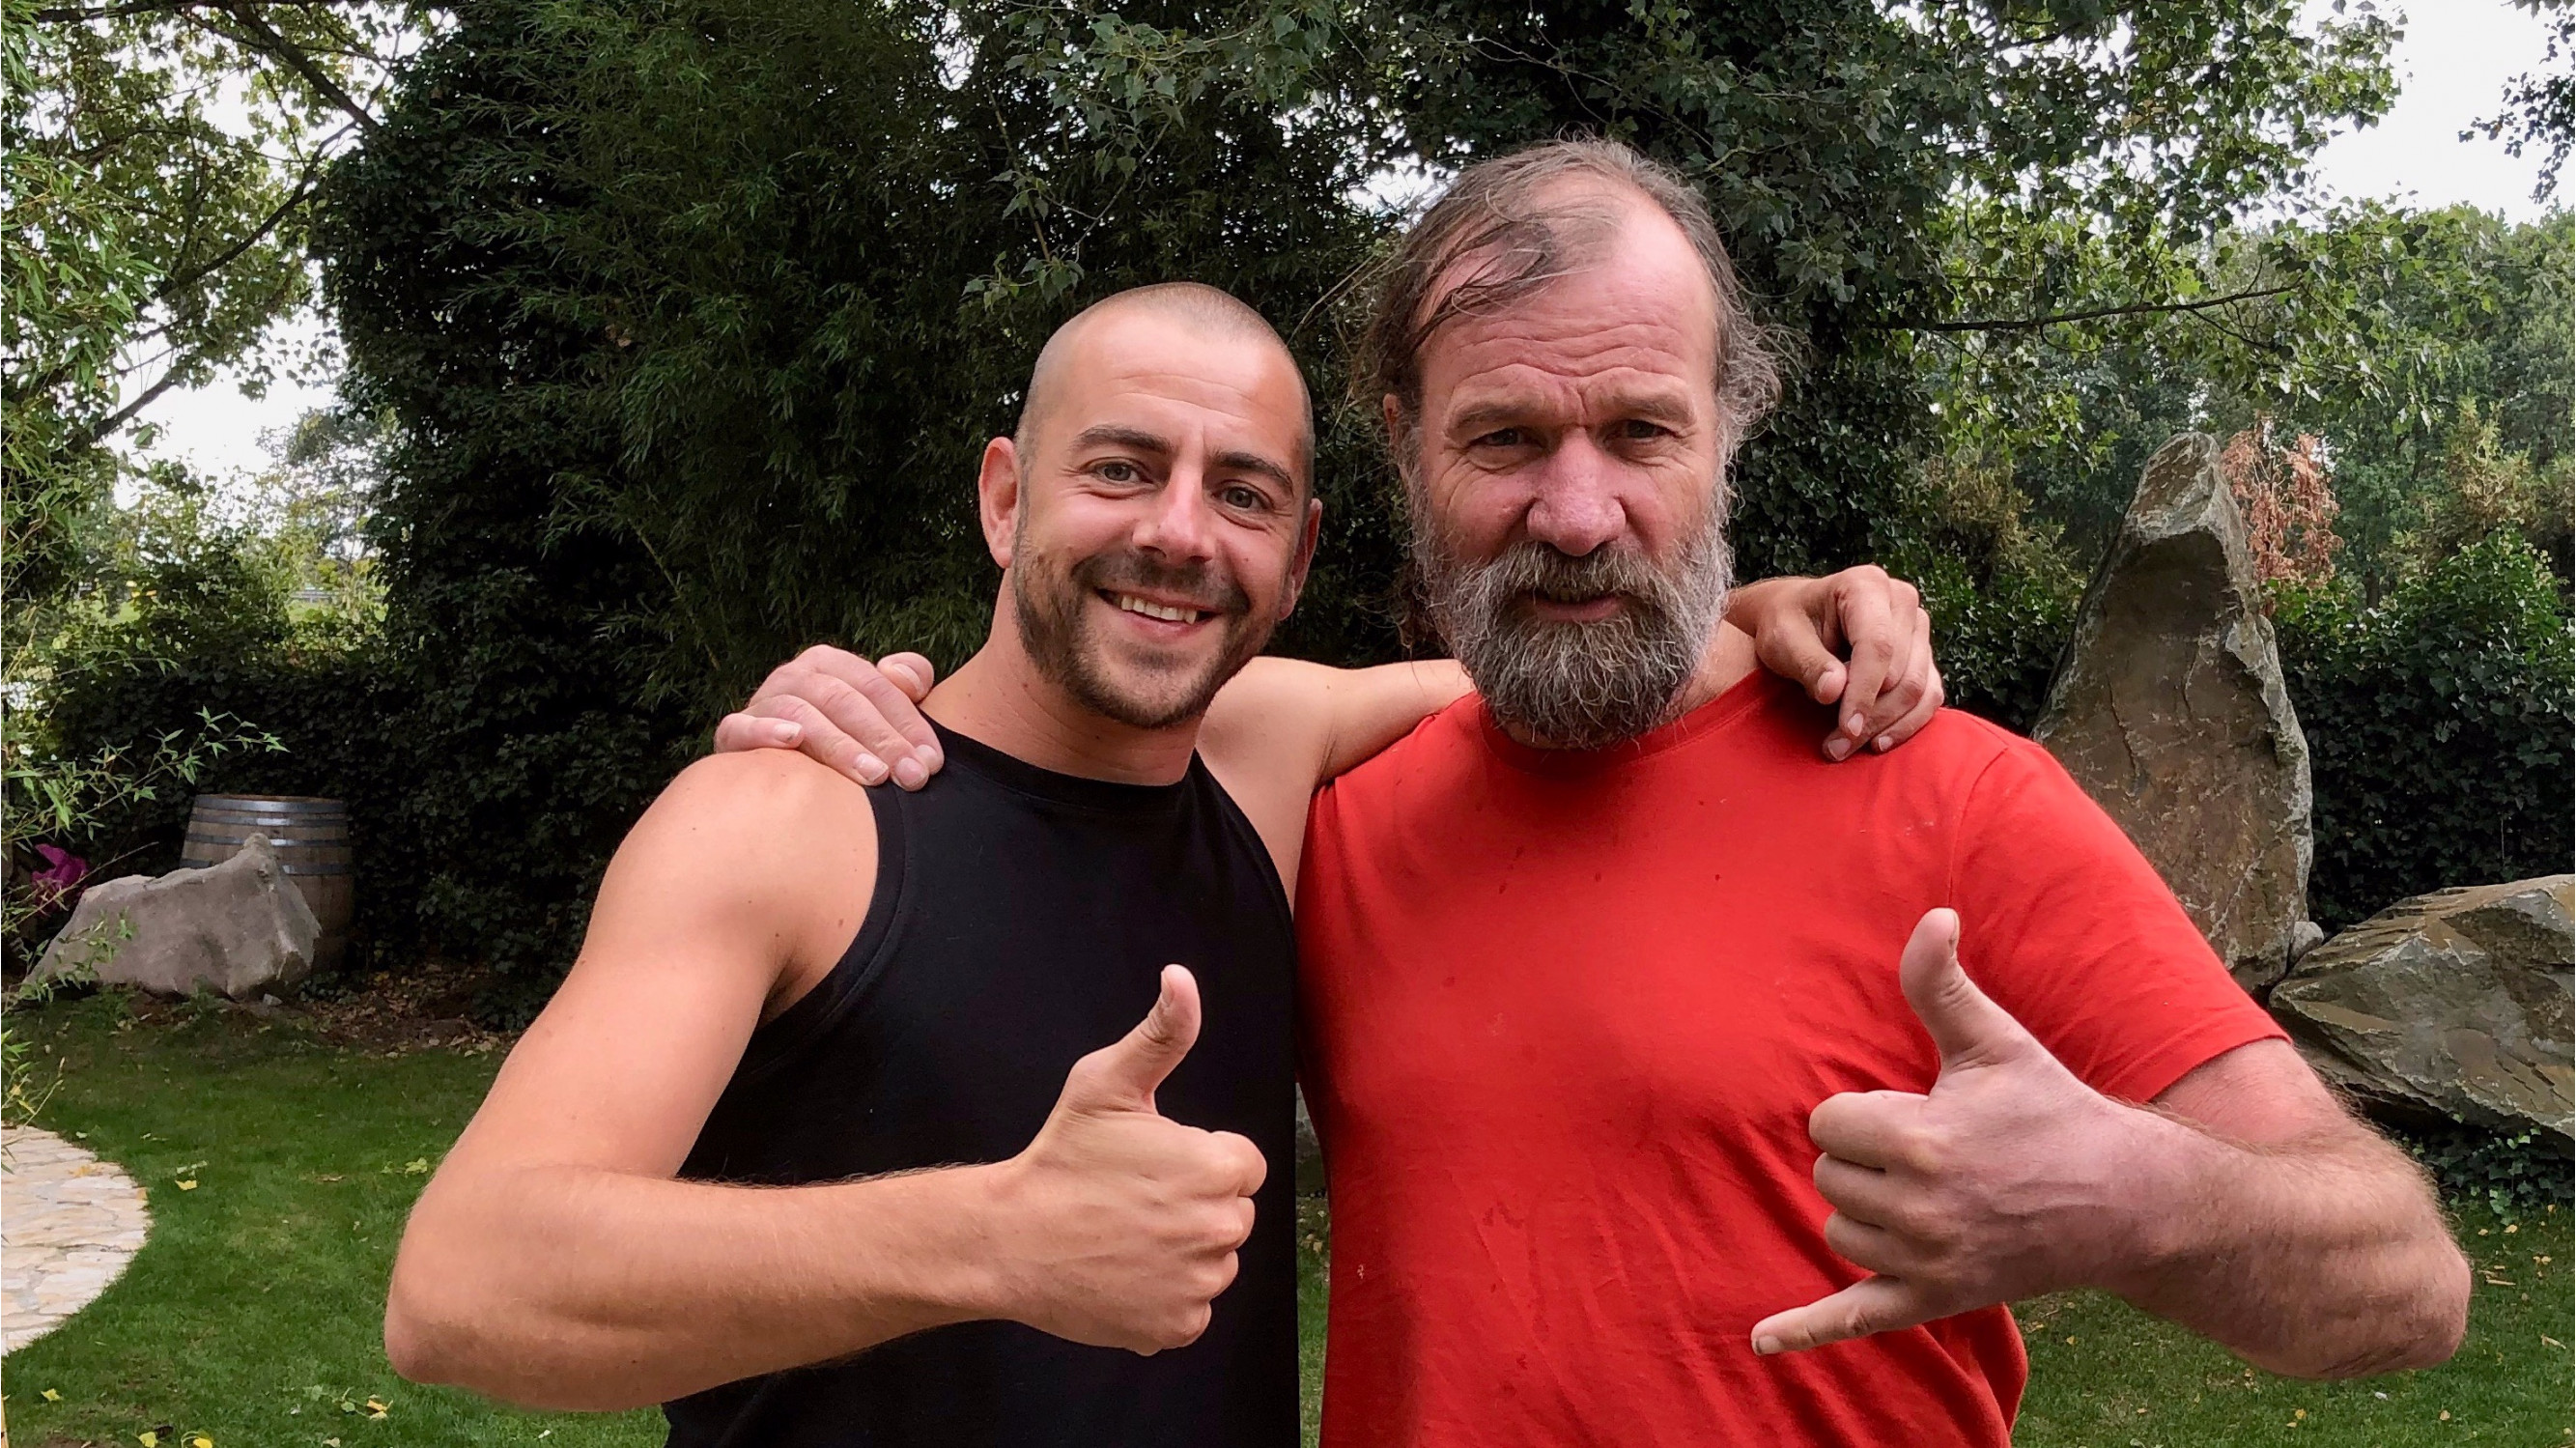 Image 16 of 27 - Experience the Wim Hof Method to get an impression of  at